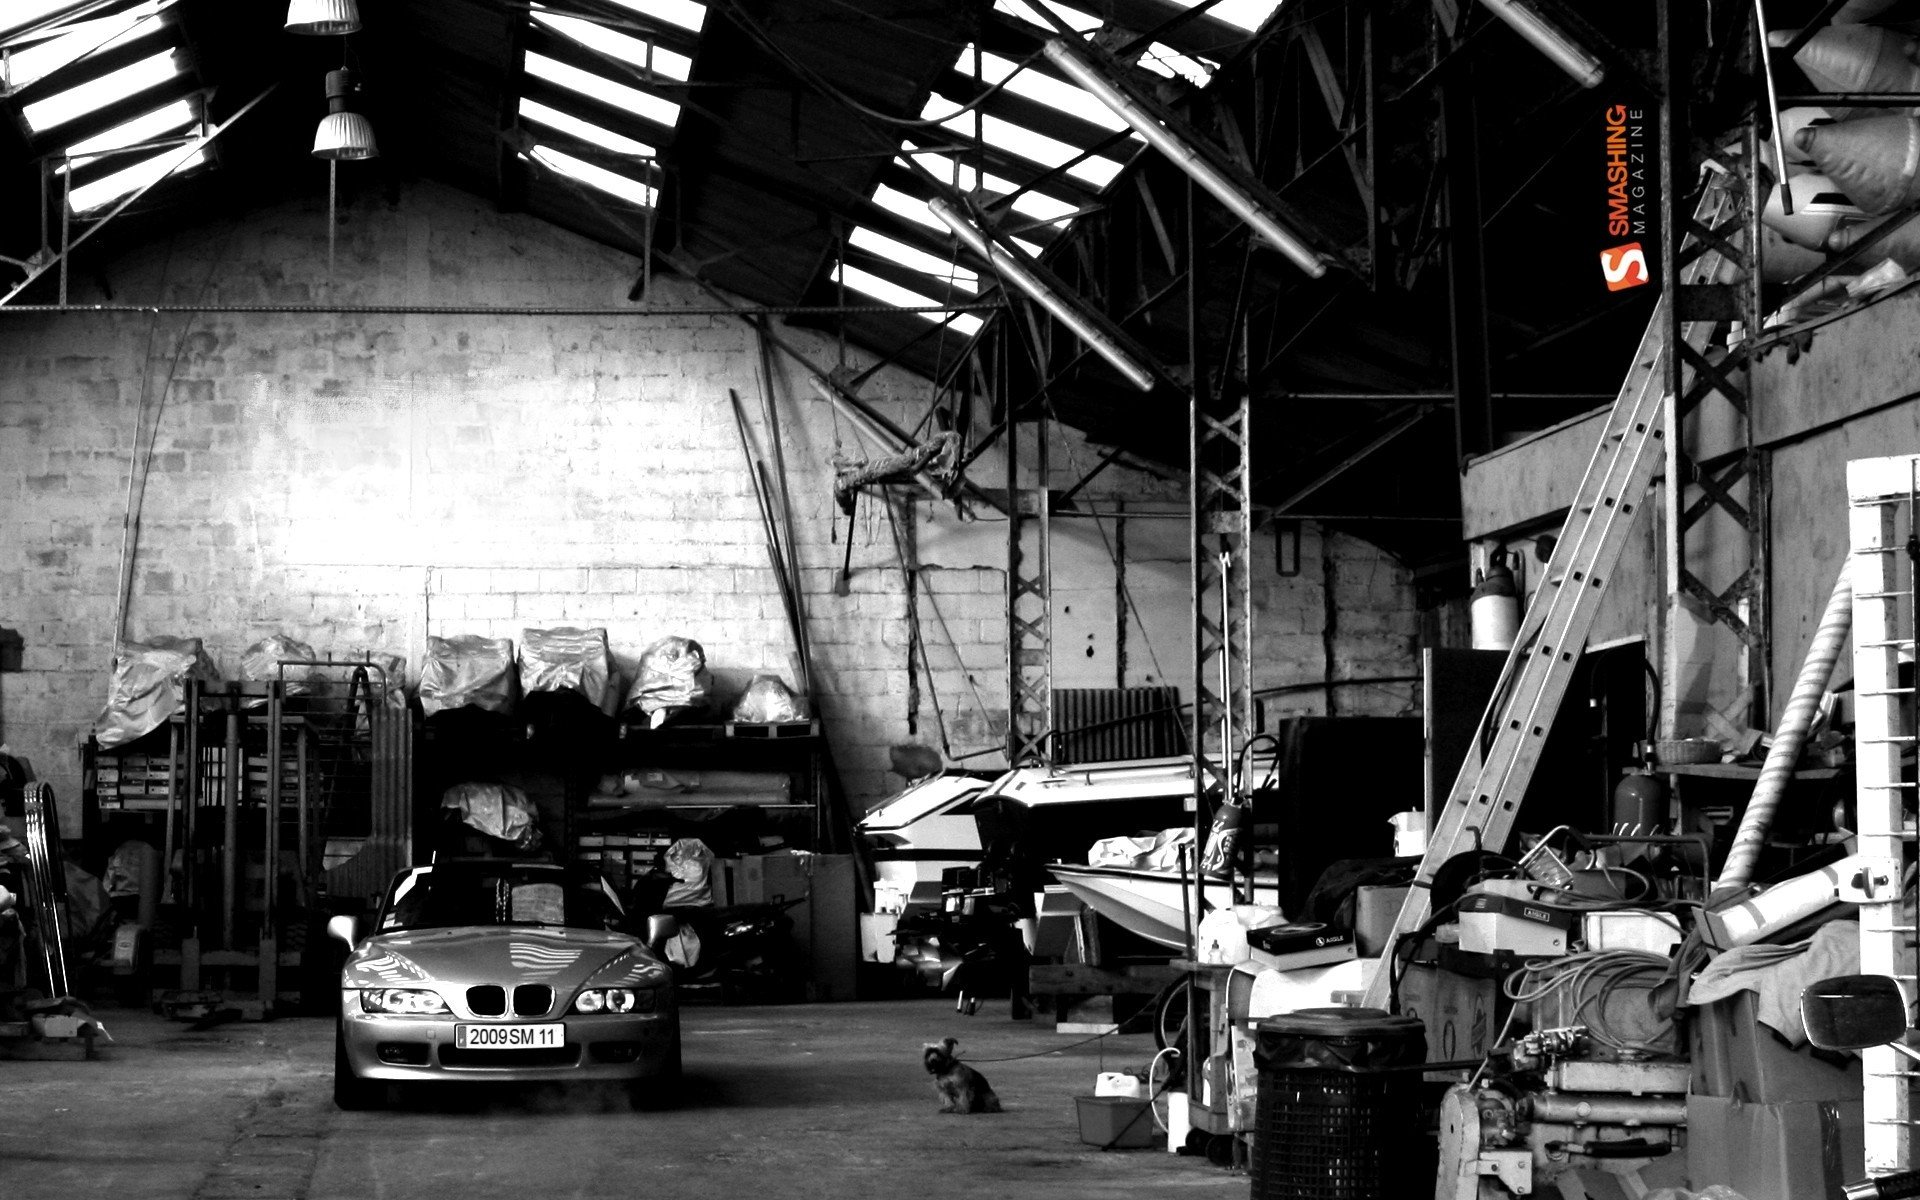 Boats Monochrome Drydocks Bmw Z3 Garage Wallpaper